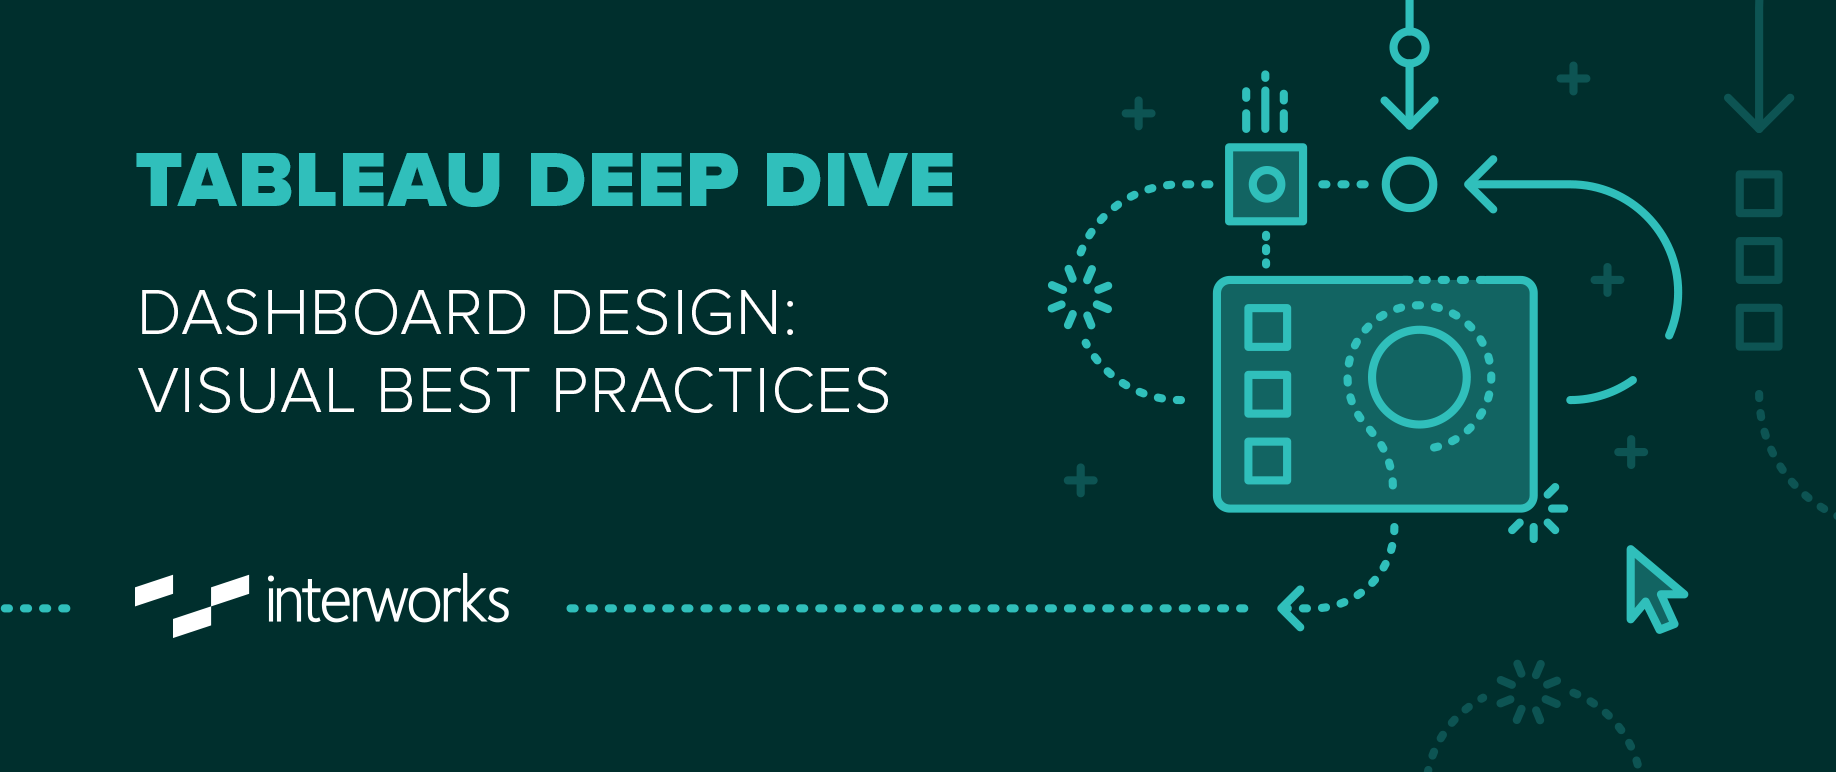 Deep Dive Dashboard Design Visual Best Practices